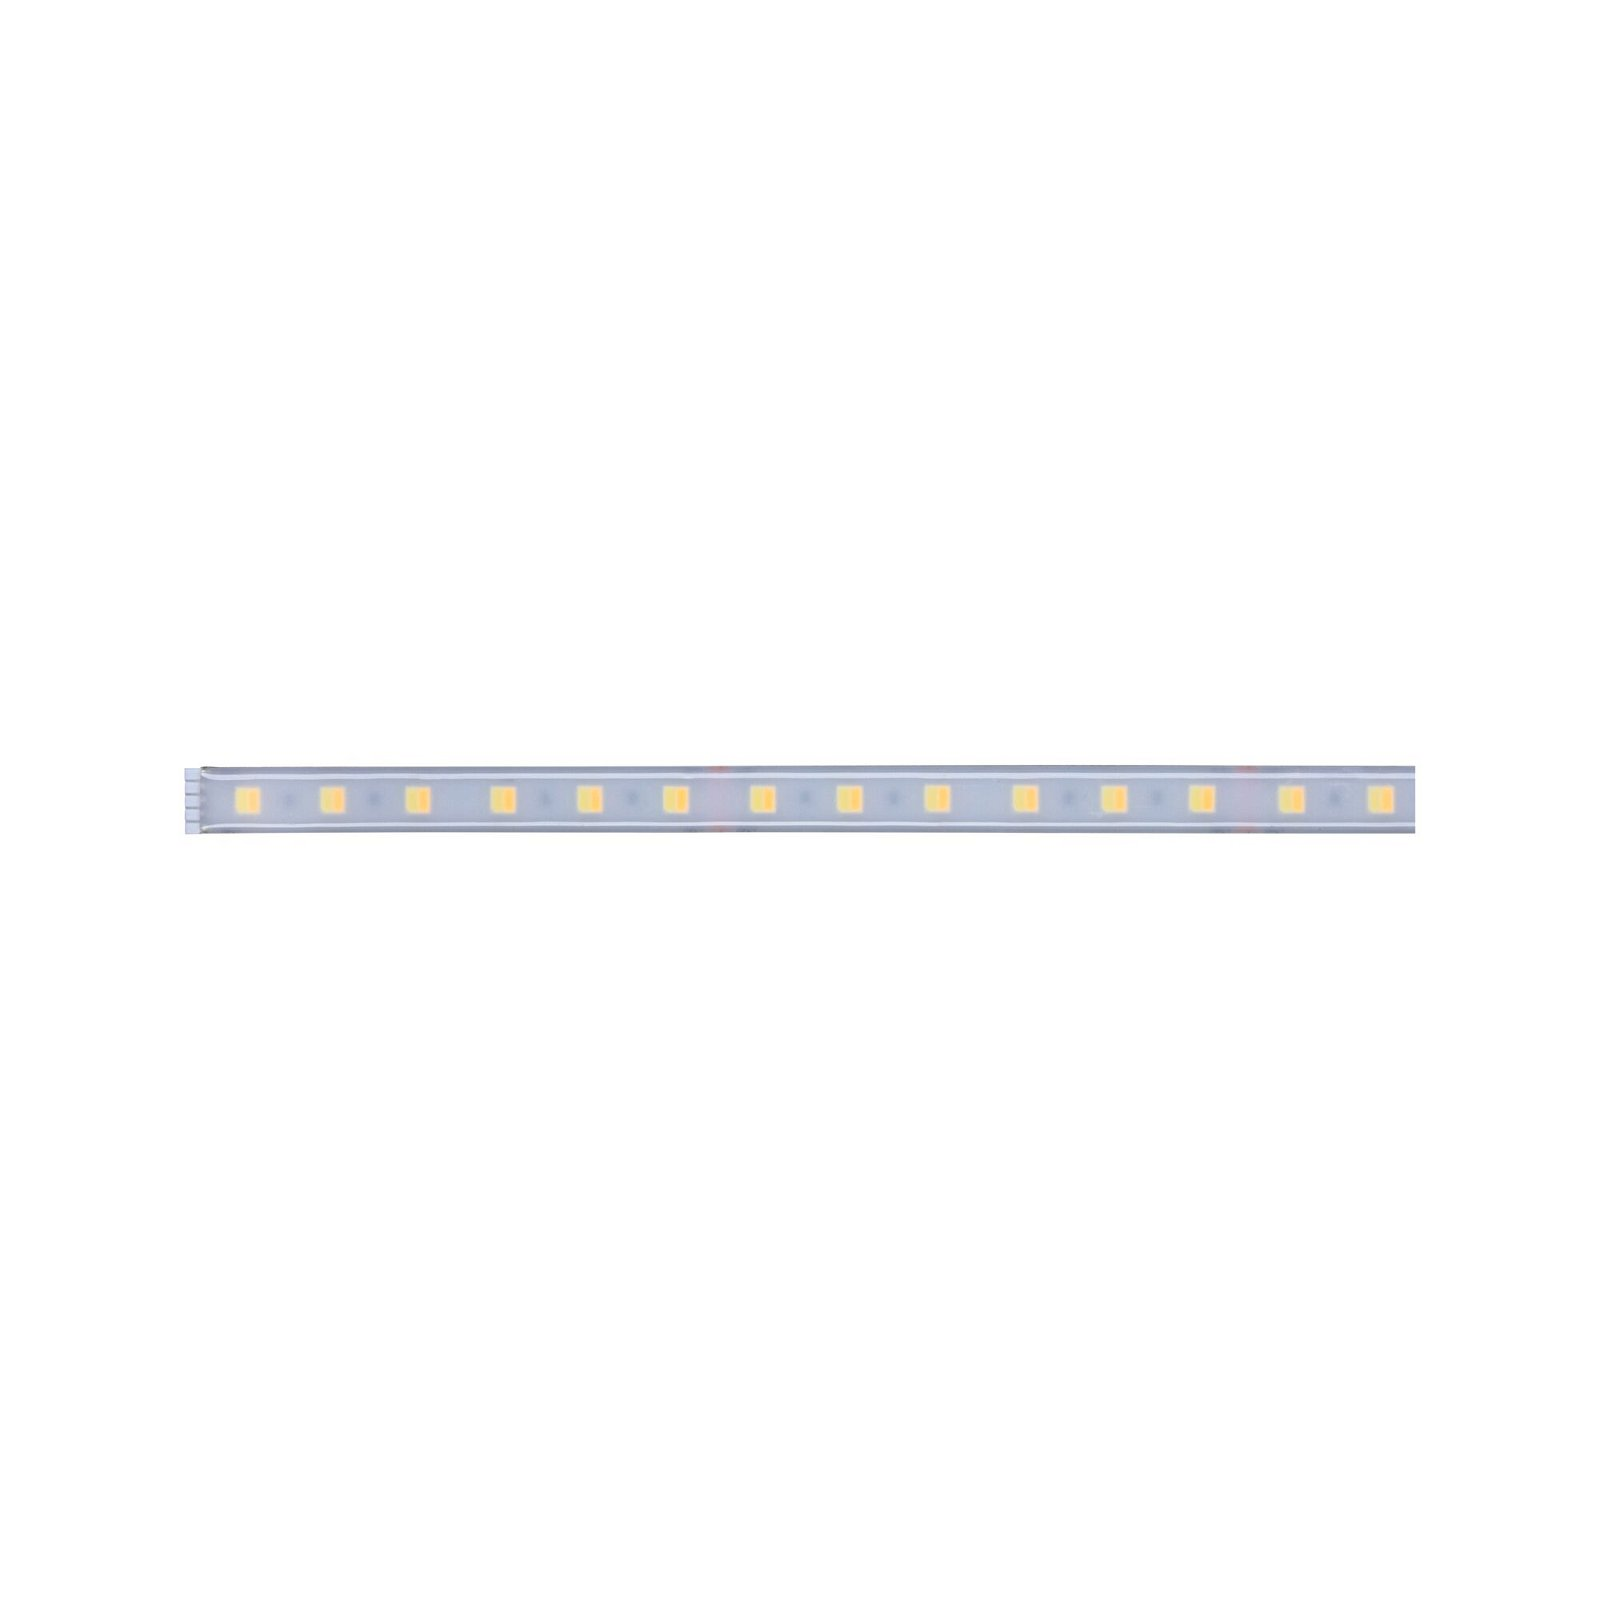 MaxLED 500 Strip LED Tunable White 1m recouvert 7W 550lm Tunable White